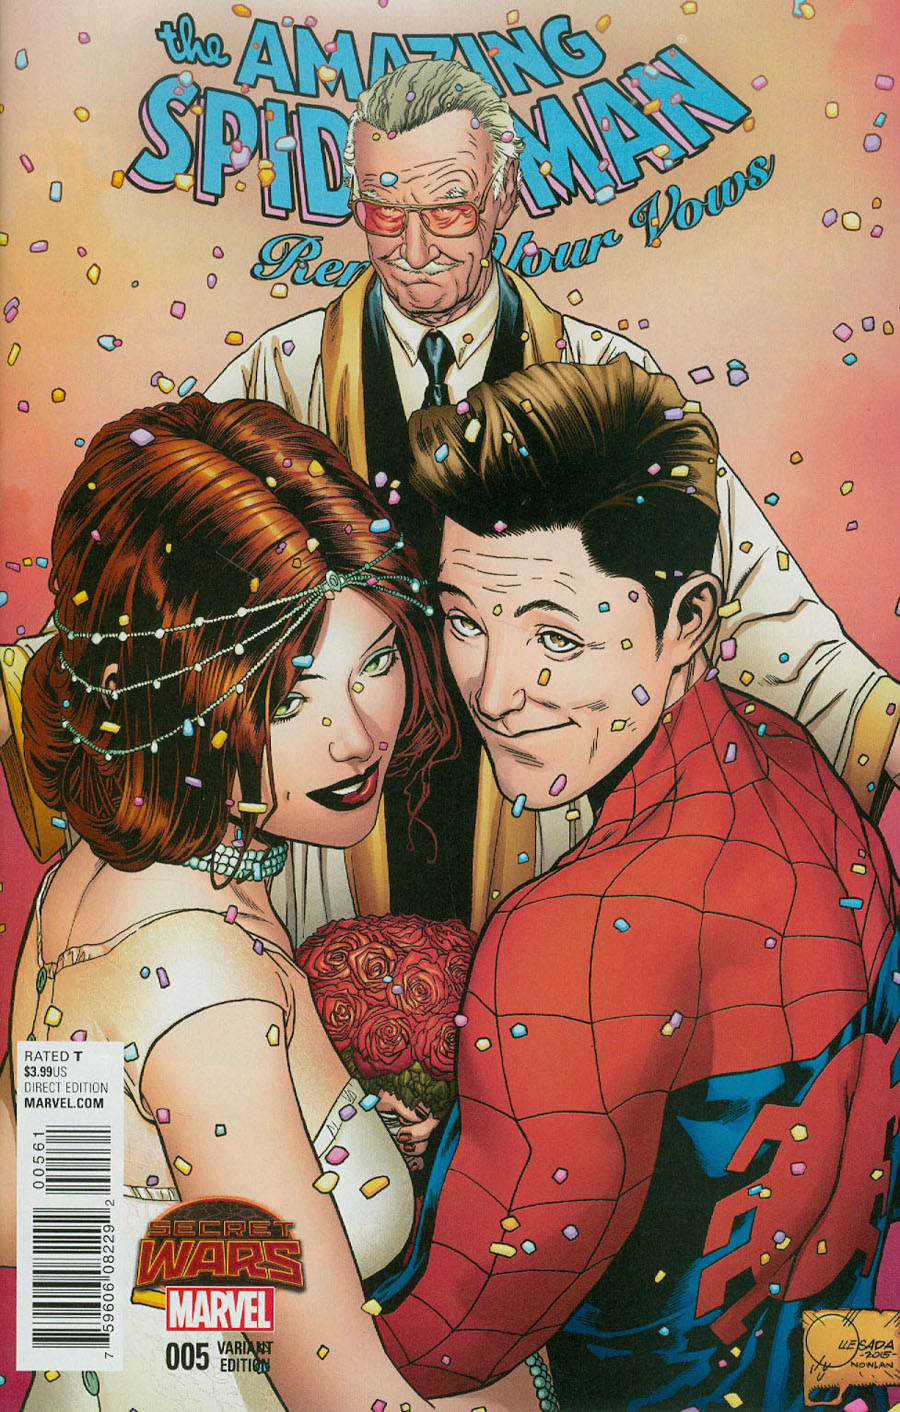 Amazing Spider-Man Renew Your Vows #5 Cover E Incentive Joe Quesada Color Variant B Cover (Secret Wars Warzones Tie-In)